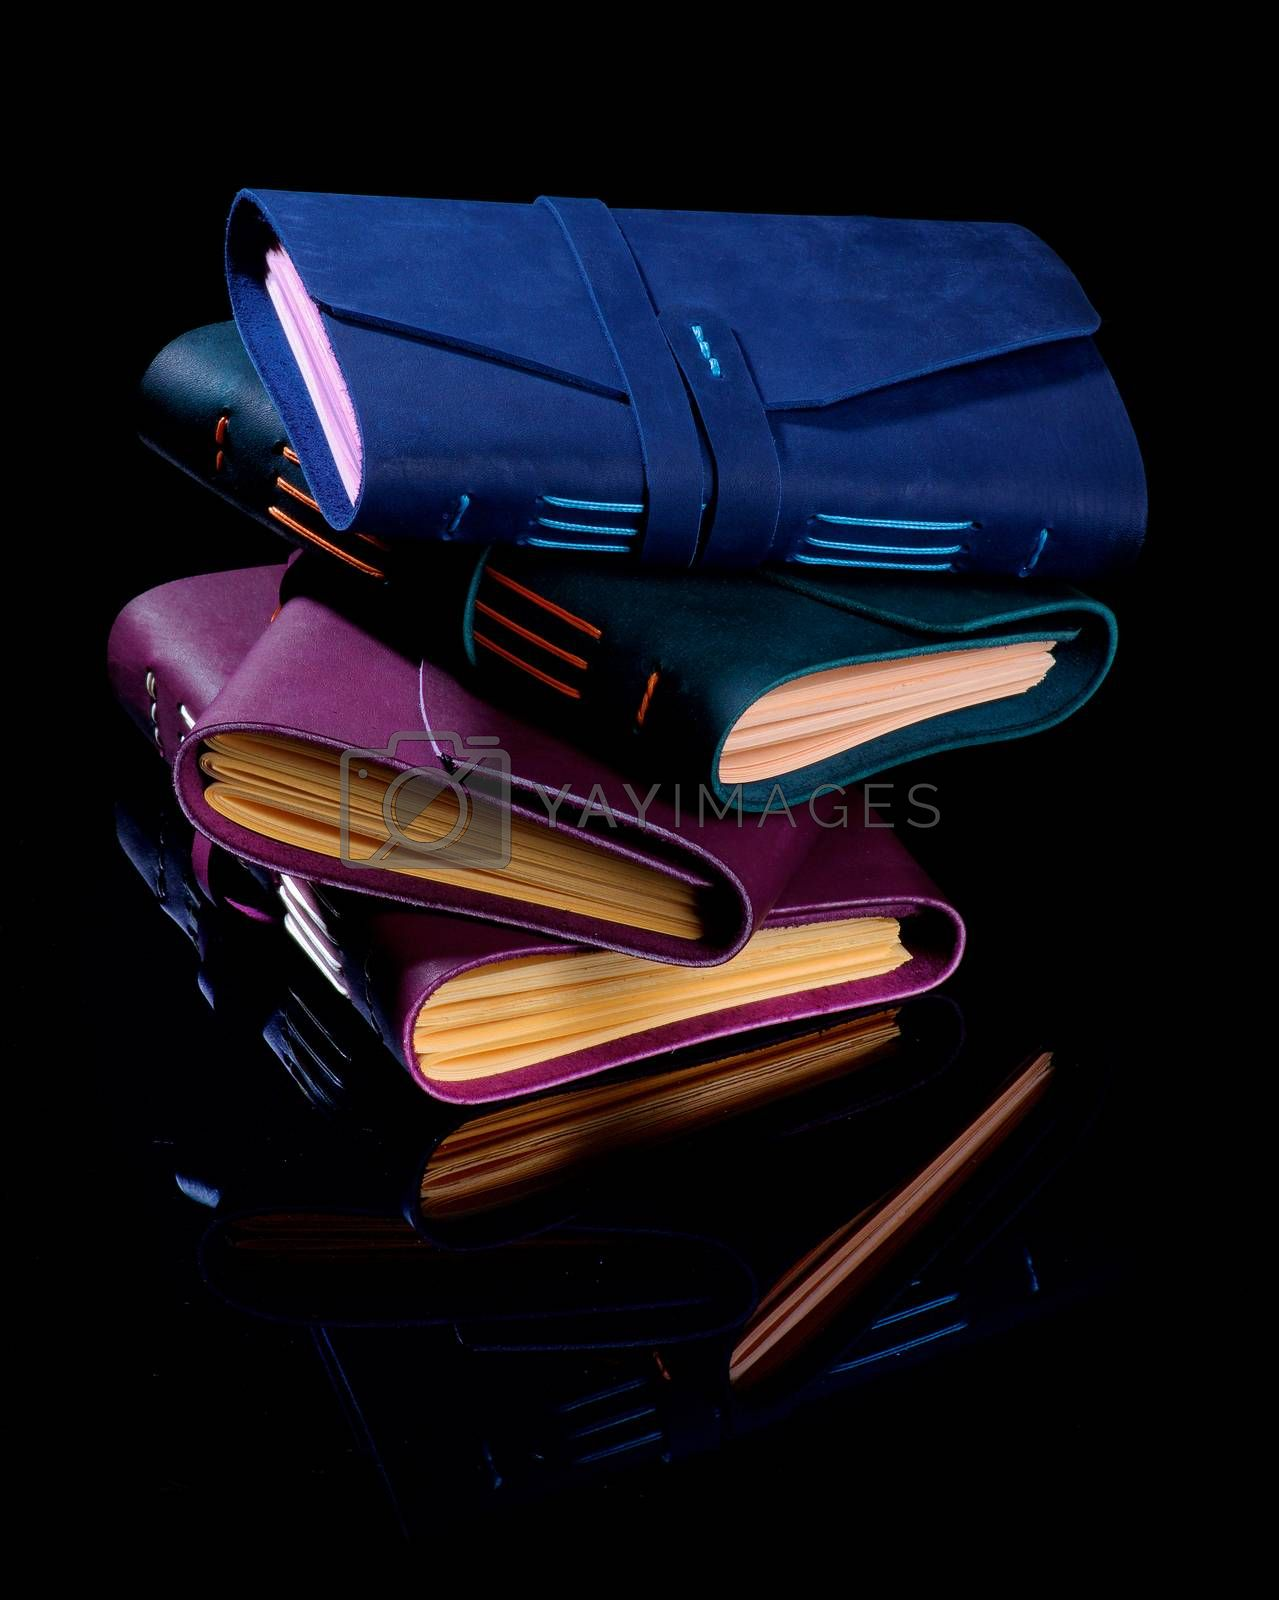 Stack of Luxury Handmade Leather Notepads with color Craft Paper isolated on Black background